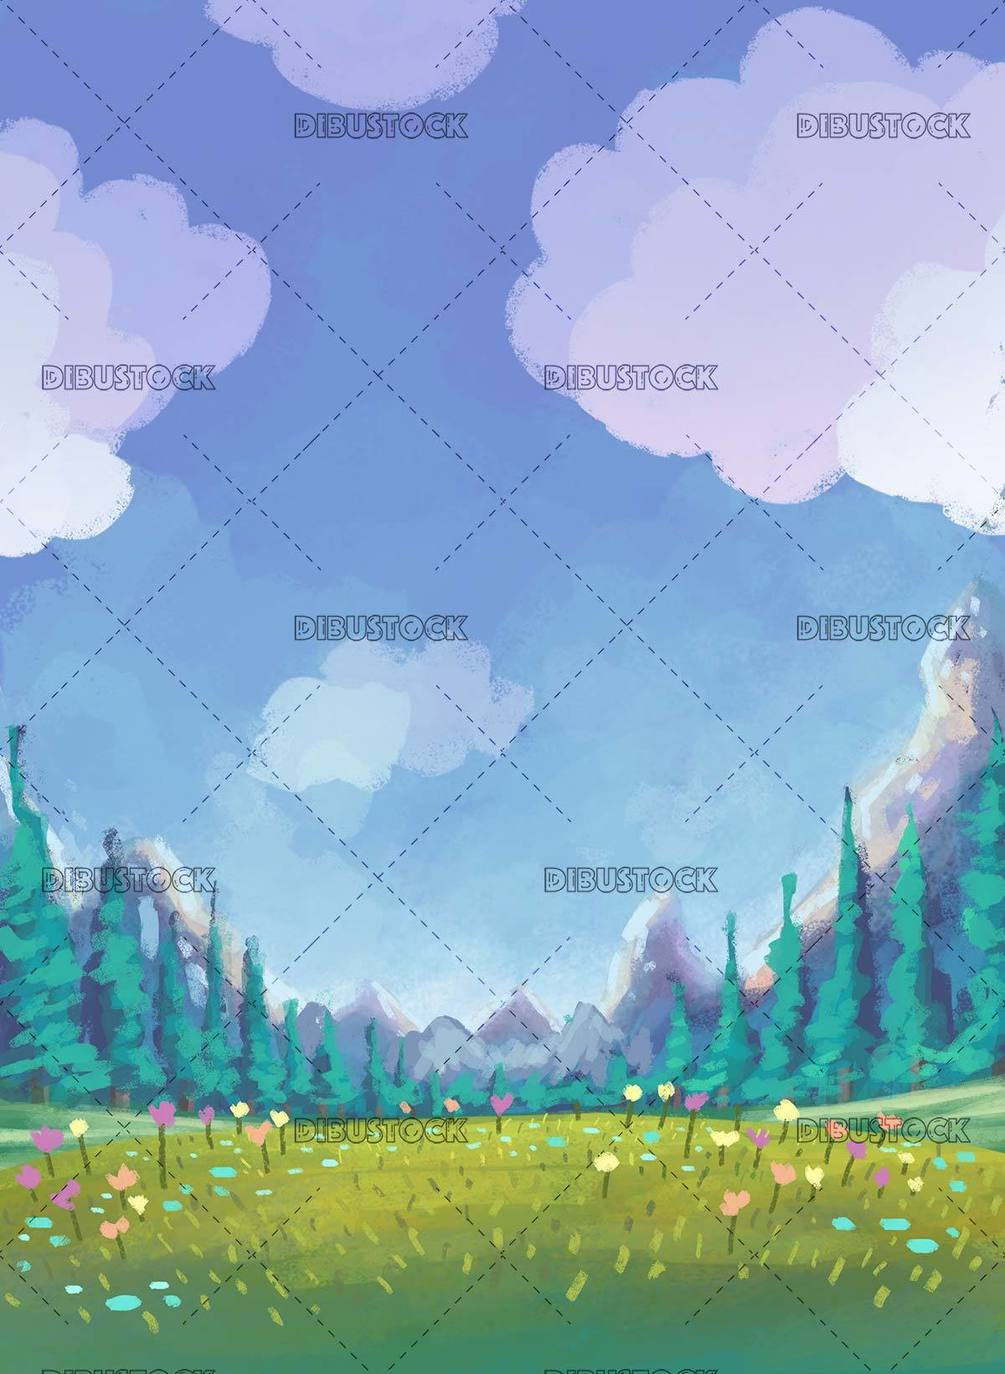 meadow background with mountains behind